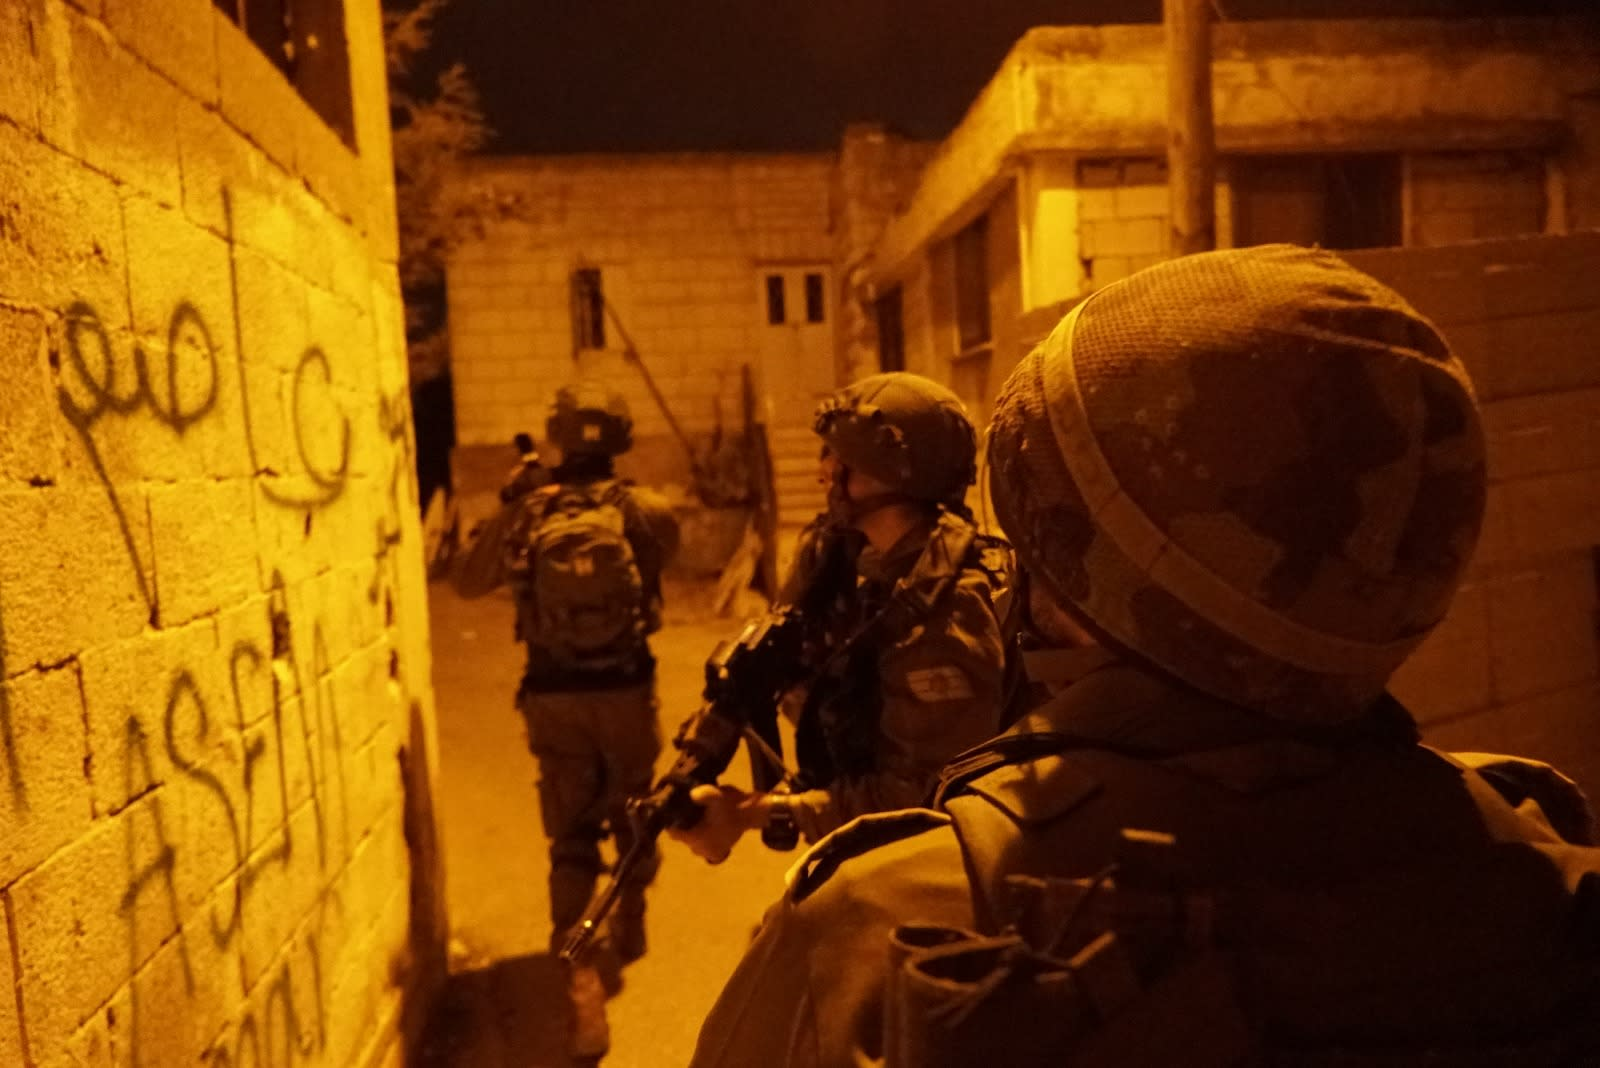 IDF soldiers seen during overnight activity following Thursday's stabbing attack, July 28, 2018 (IDF SPOKESPERSON'S UNIT)